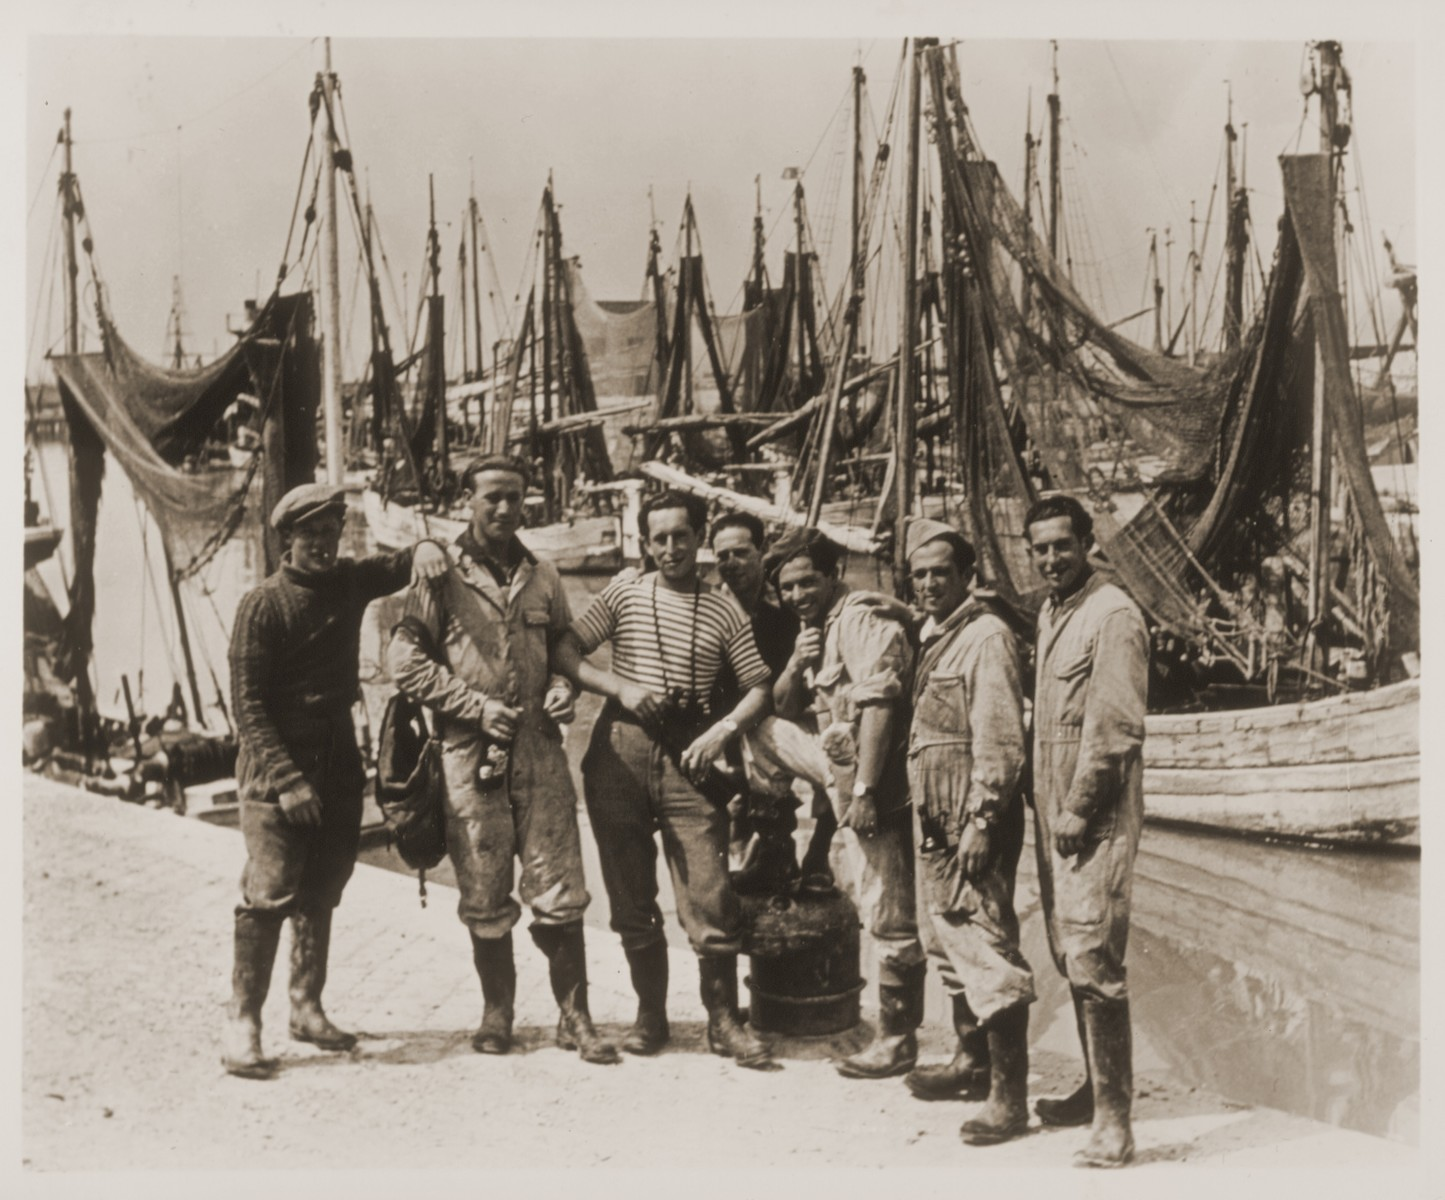 Jewish youth living at the Harishona Zionist collective in Fano, pose on a wharf where dozens of fishing boats are moored.  Pictured from left to right are: Yossef Ackerman, Patt, Daniel Serchuk, unknown, Yuzek Kempler, unknown, and Holtzman.